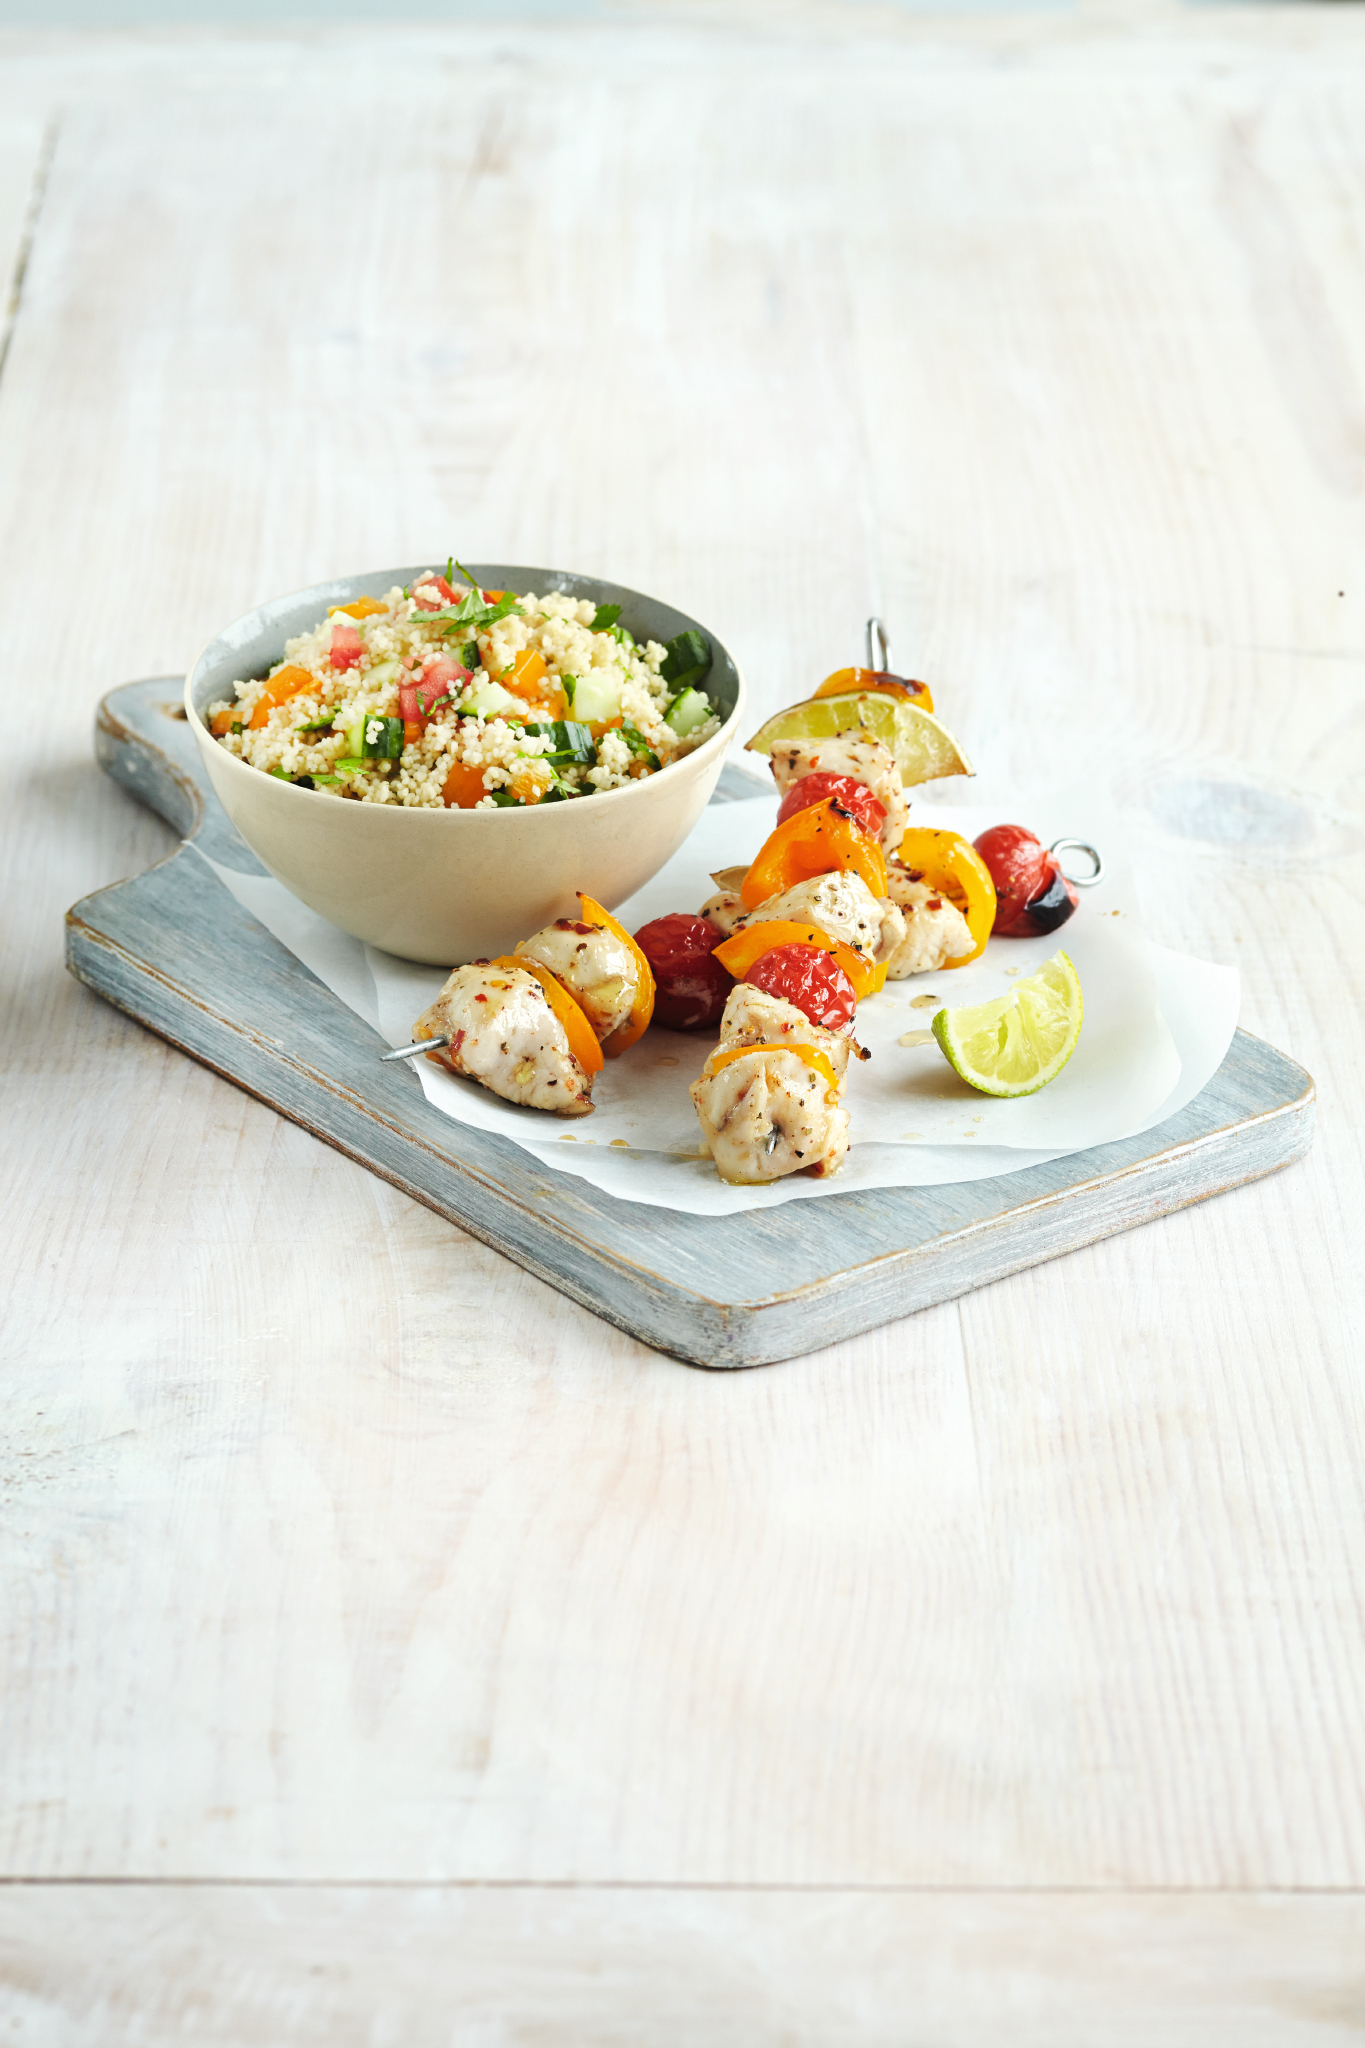 Syn Free Piri Piri Chicken Salad - gluten free and Slimming World friendly - recipe provided to Slimming Eats by Slimming World USA